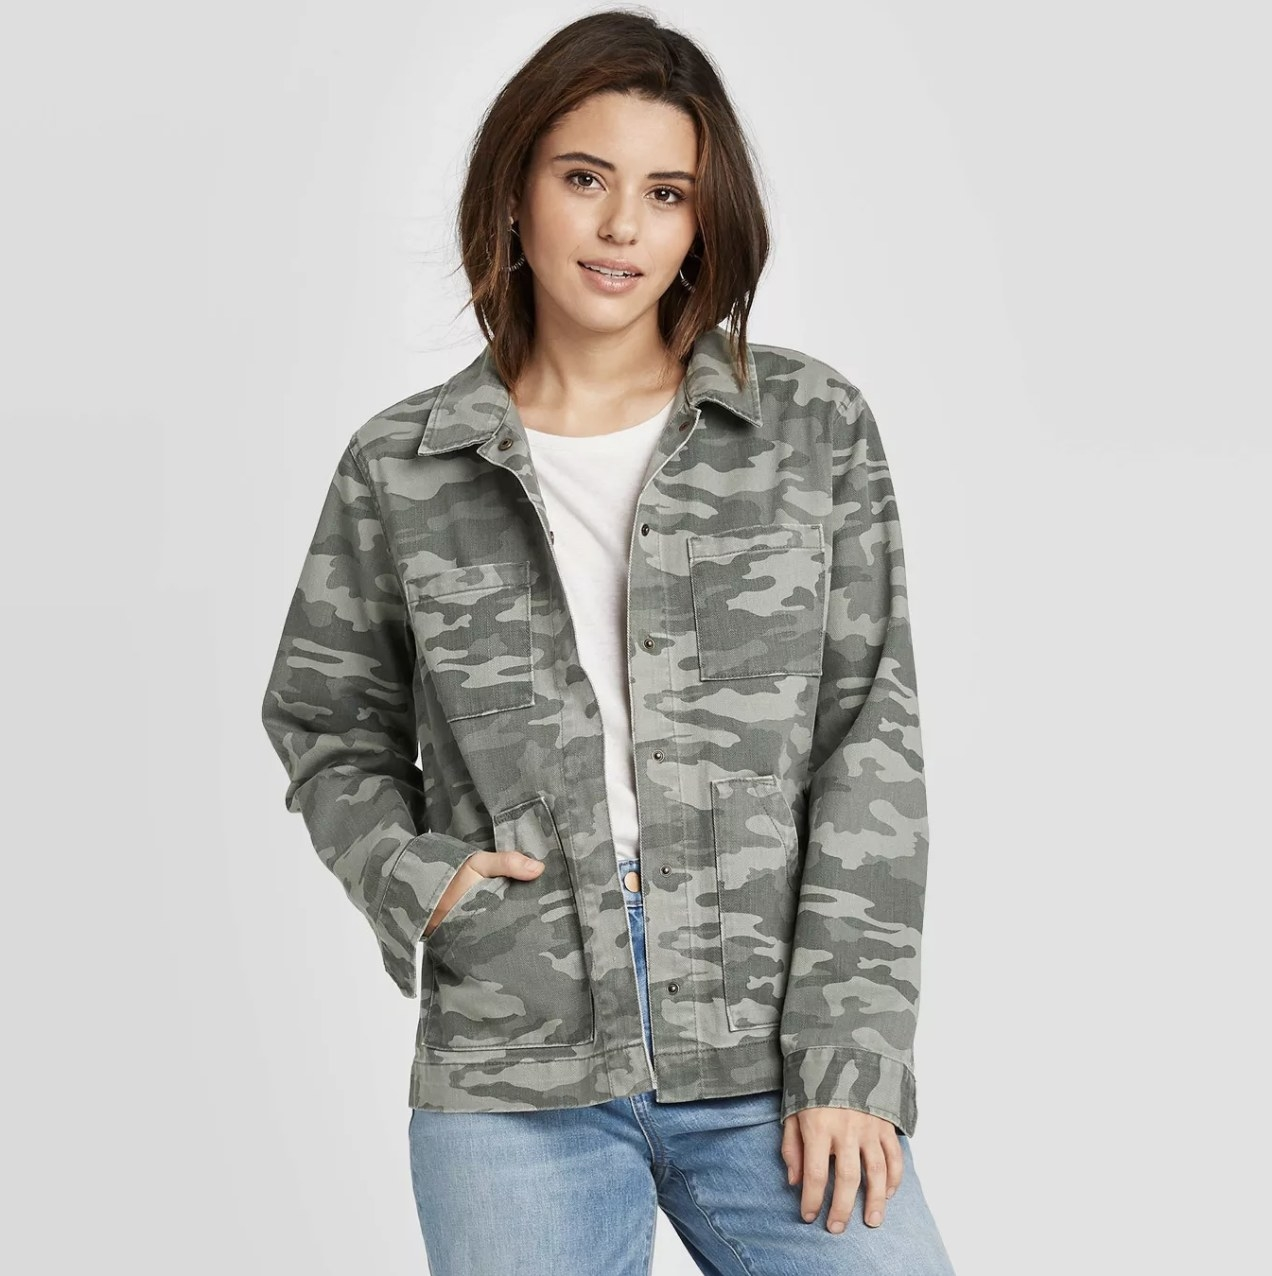 Model wearing the camo jacket